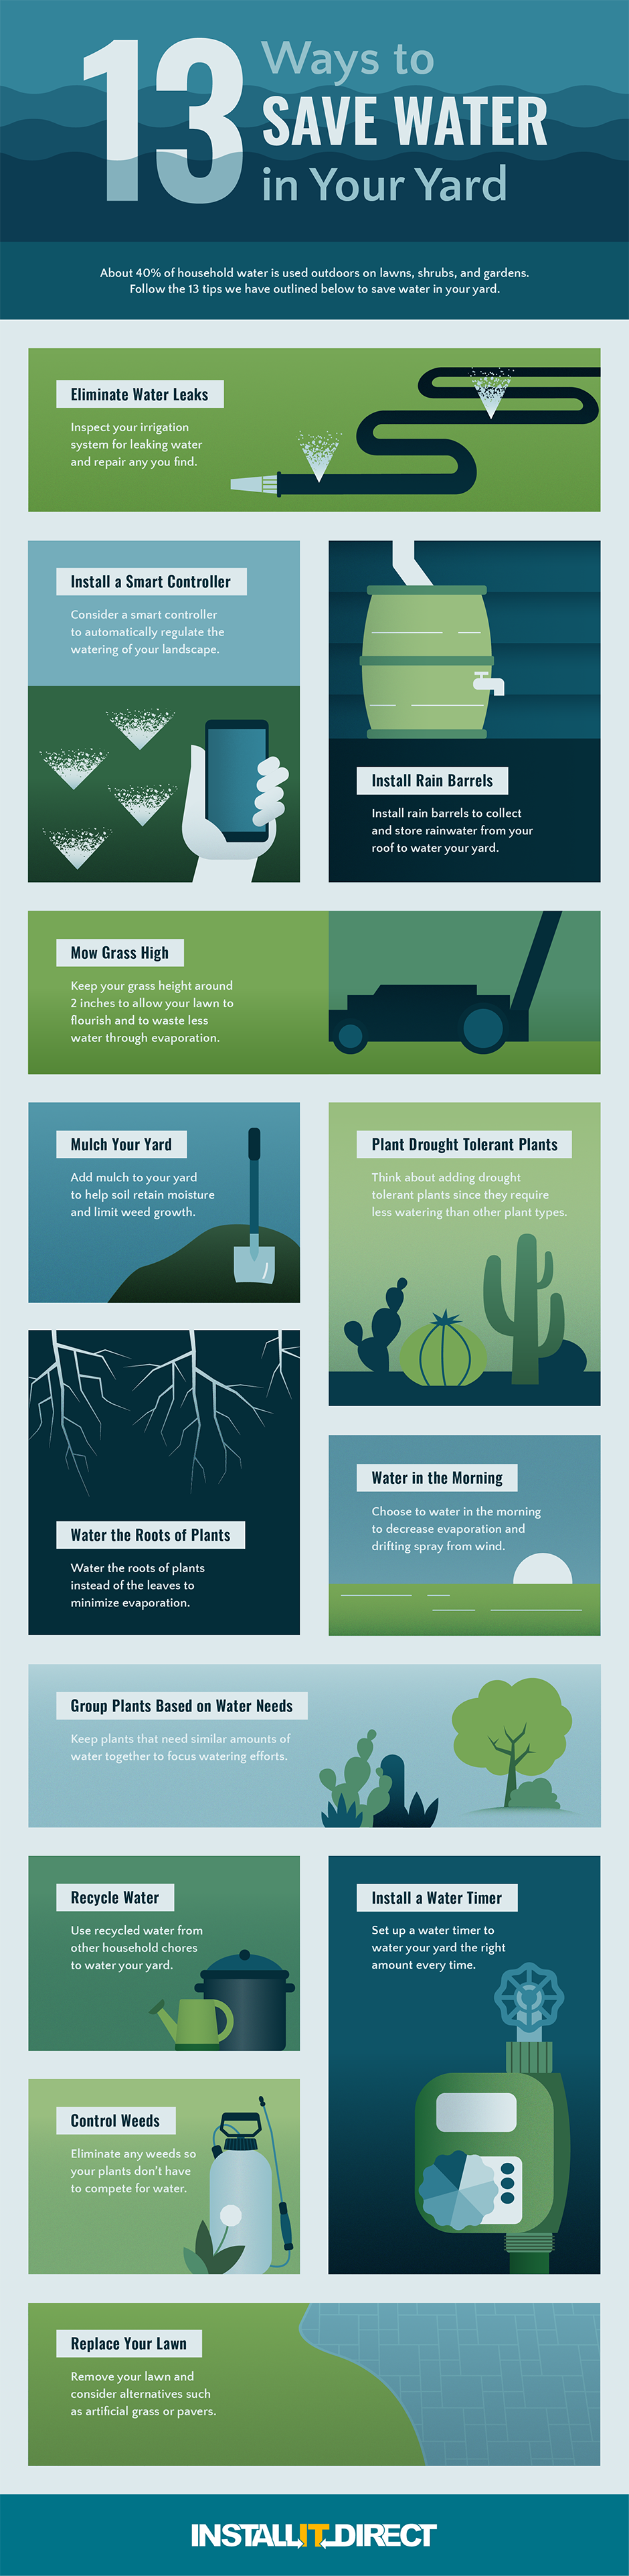 13 Ways to Save Water in Your Yard